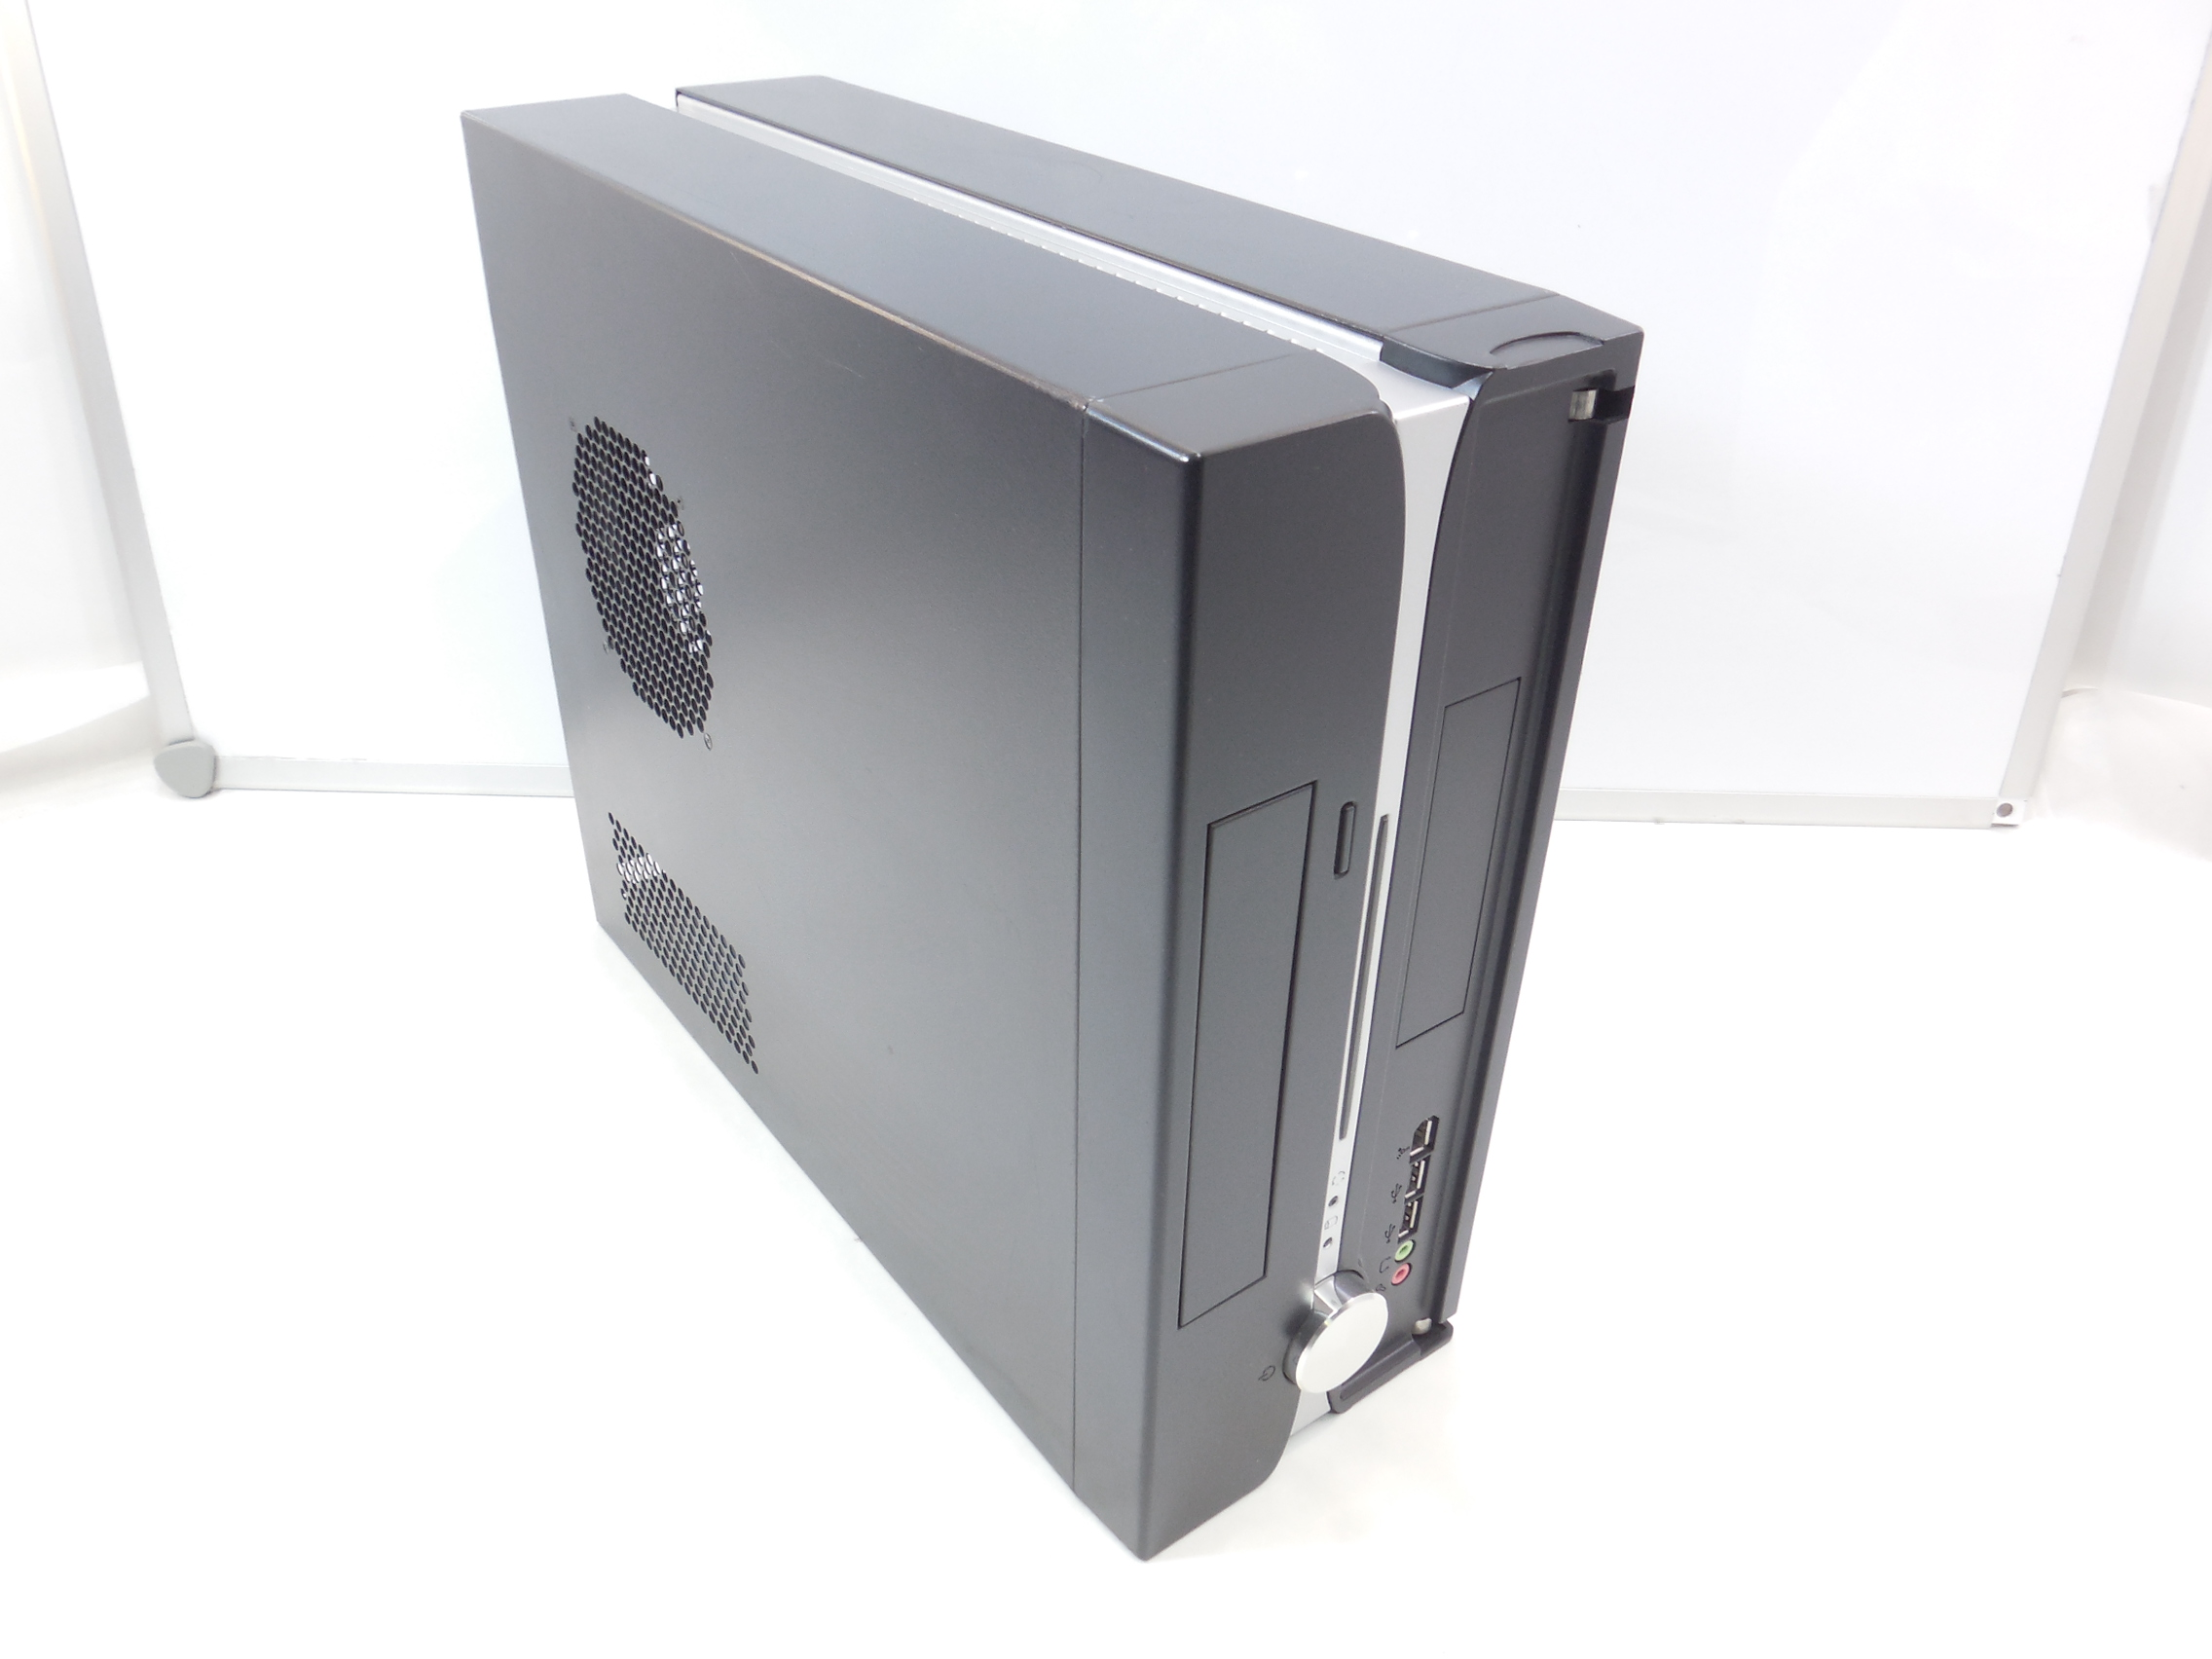 Корпус Mini Desktop с БП 300W - Pic n 279088